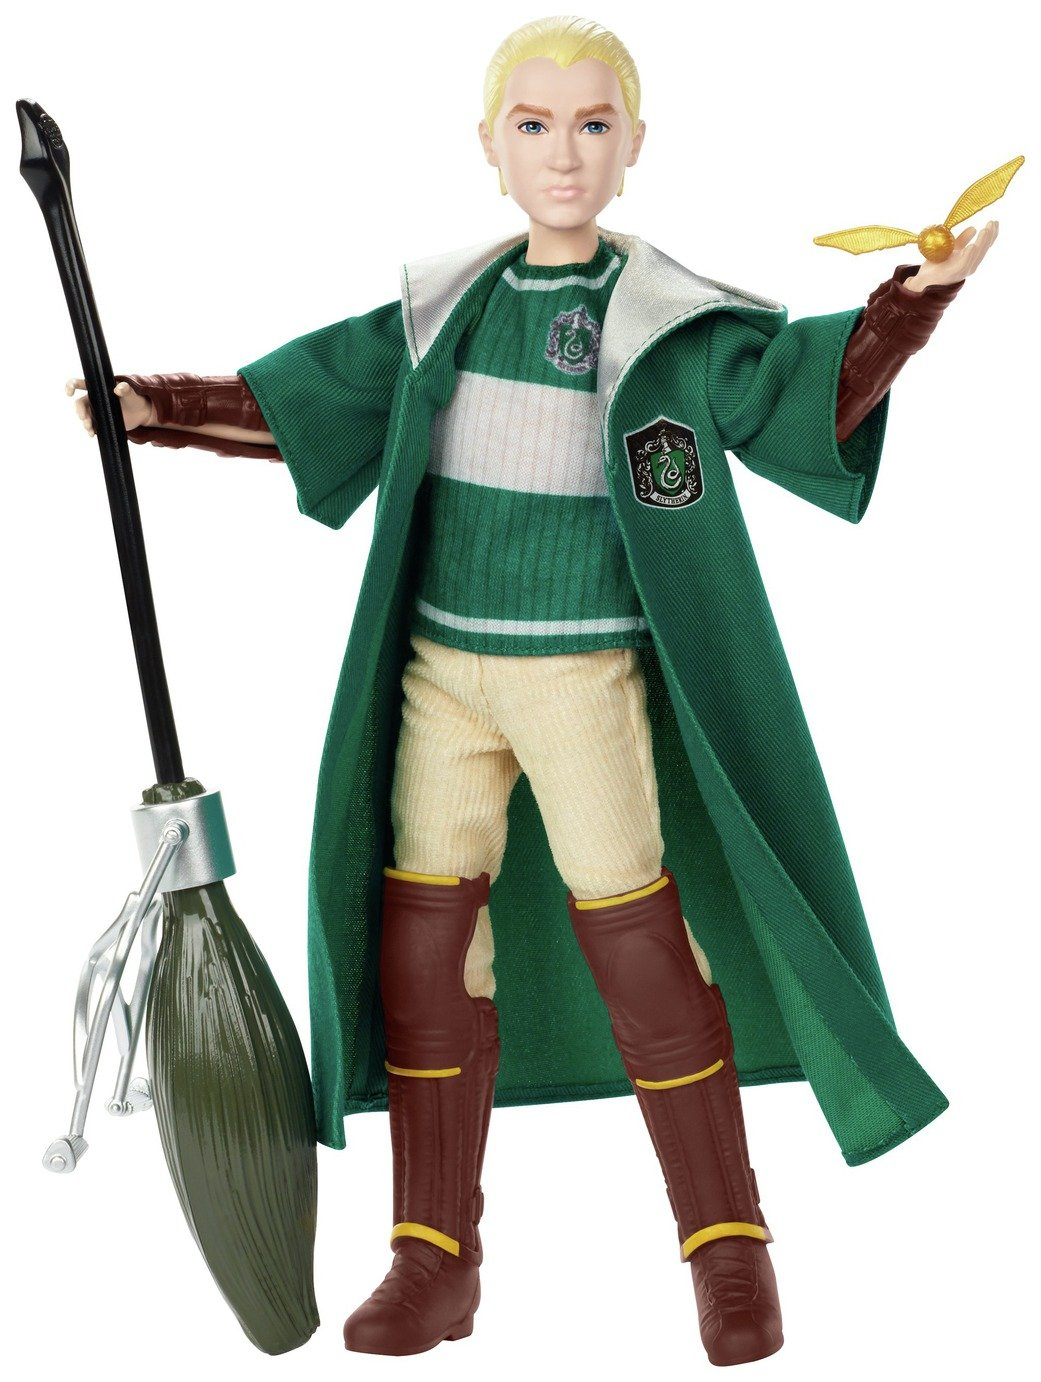 Harry Potter Draco Malfoy Quidditch Game